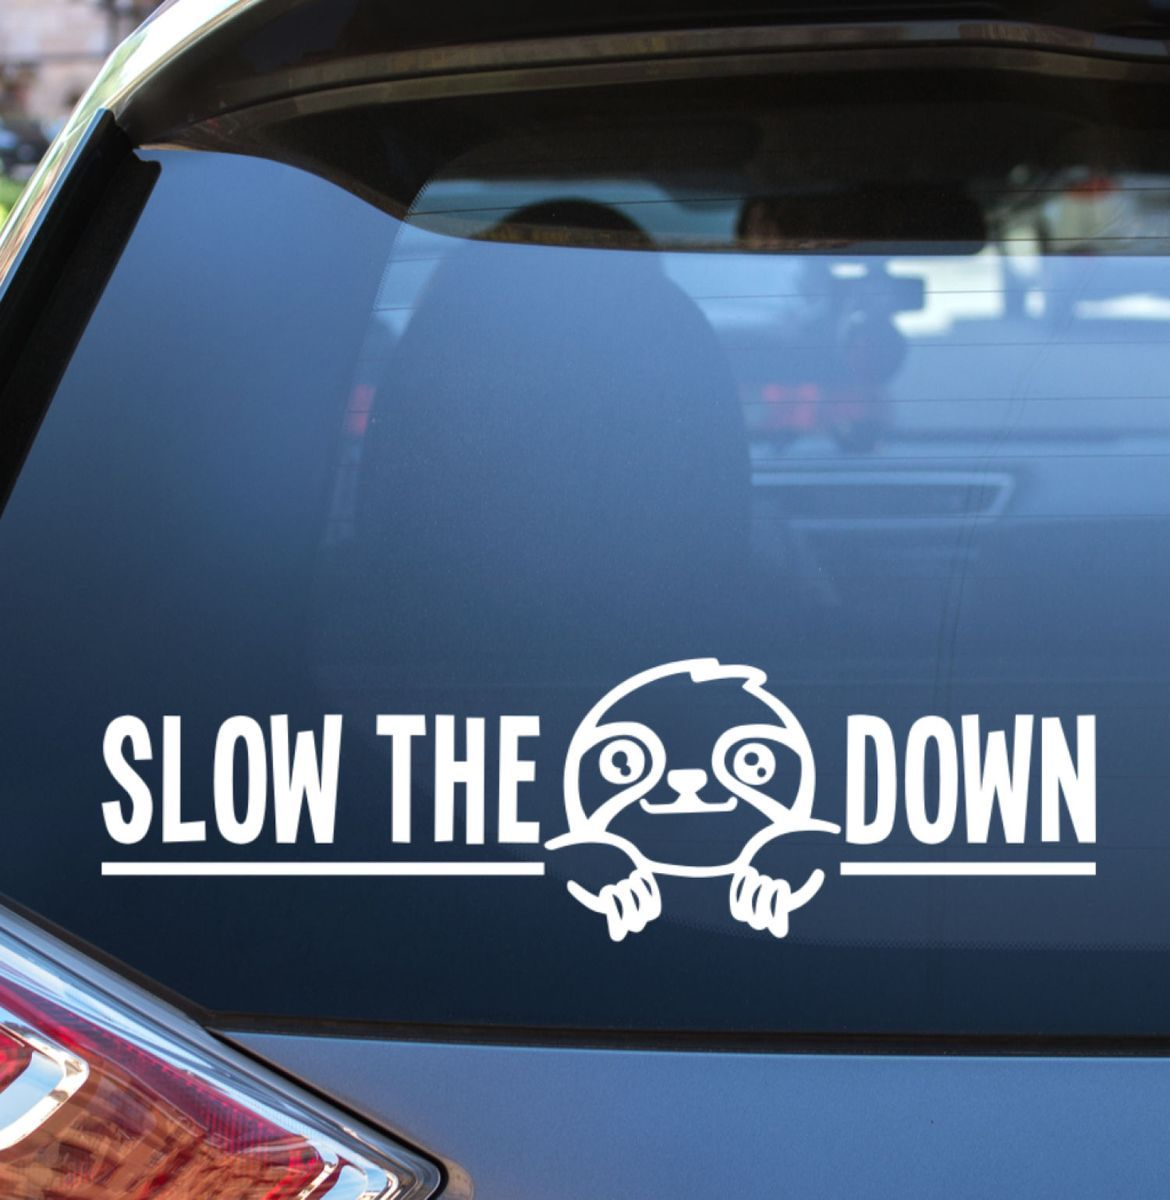 This Adorable Vinyl Decal Is Perfect For Sloth Lovers Remind Your Fellow Drivers To Slow The Sloth Dow Car Monogram Decal Unique Vinyl Decals Car Decals Vinyl [ 1200 x 1170 Pixel ]